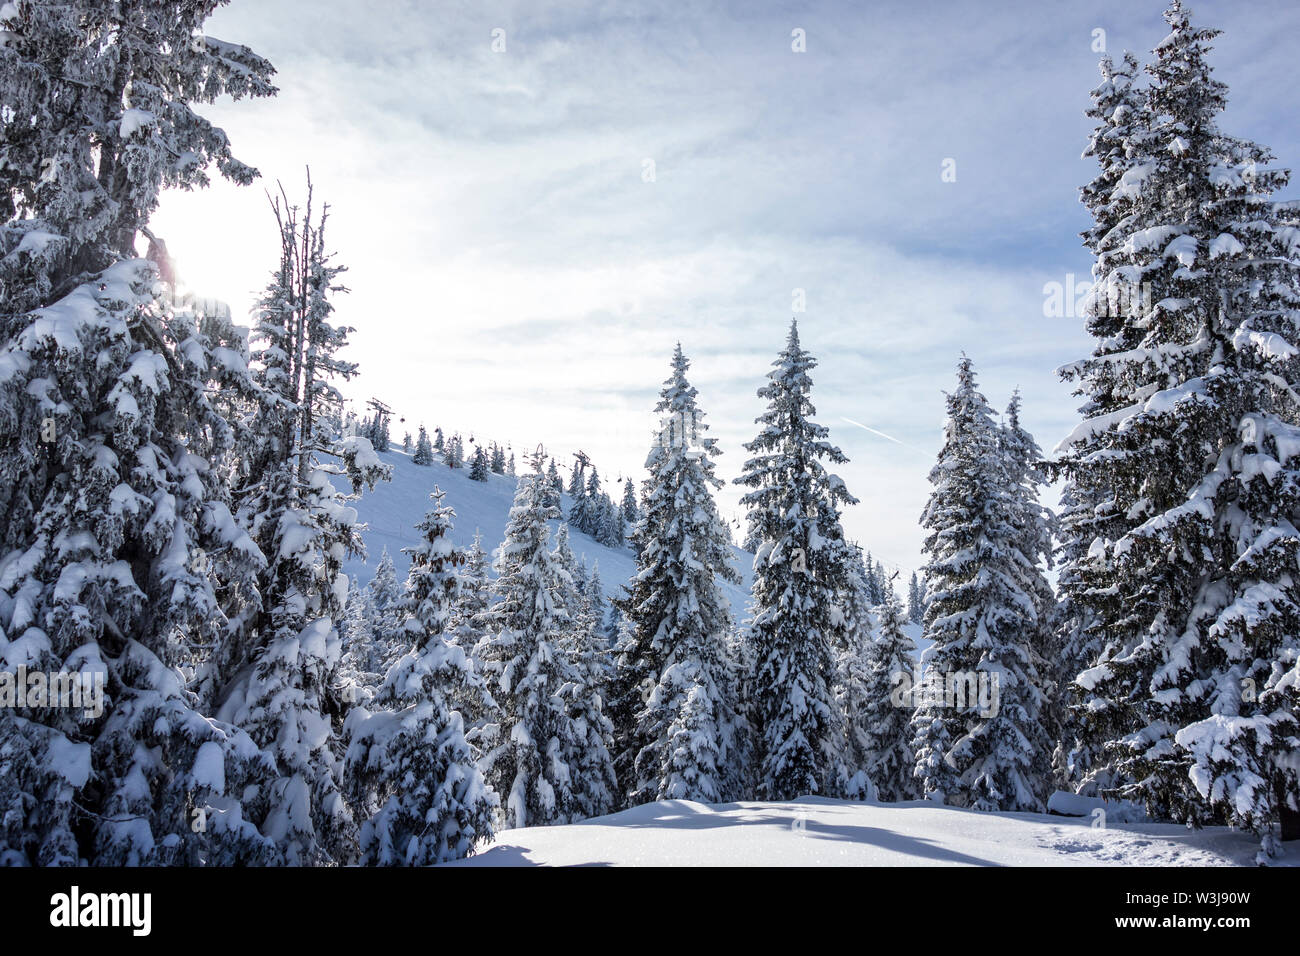 Snow covered trees in a ski area - Stock Image